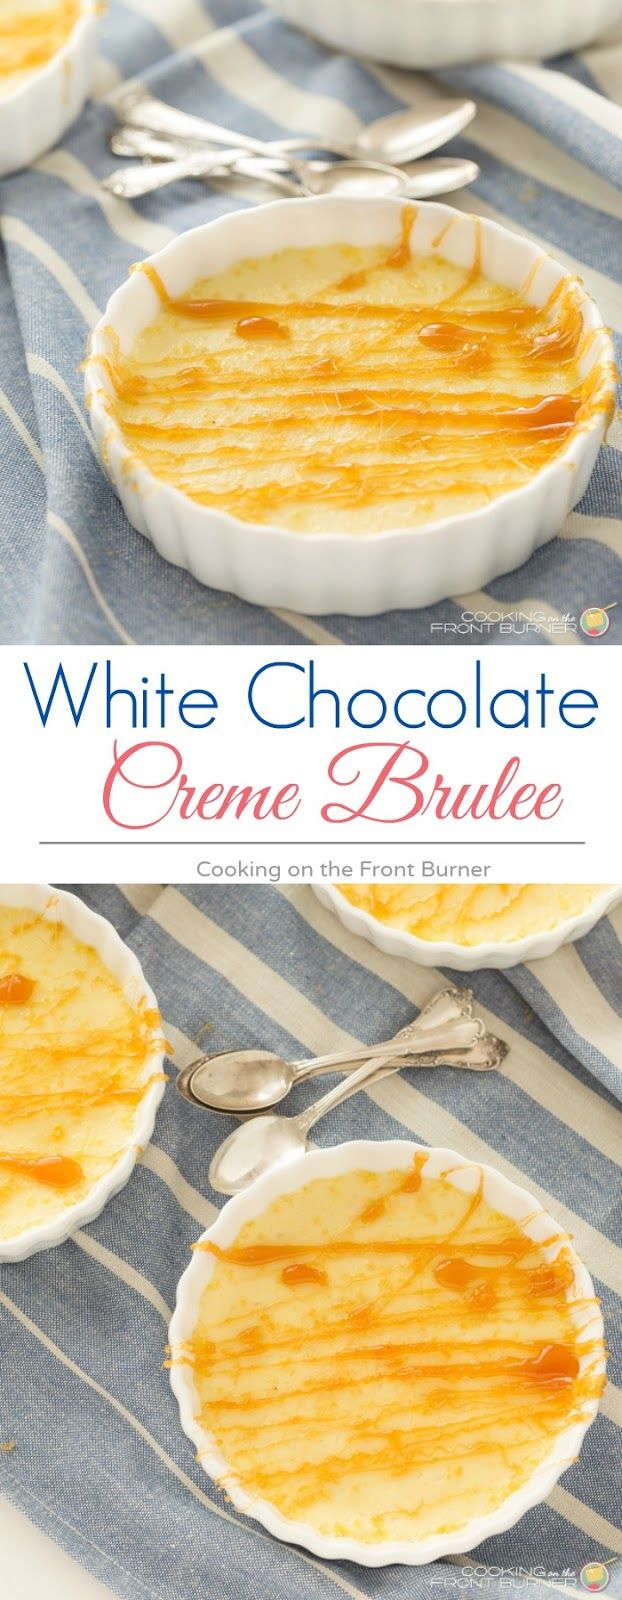 White Chocolate Creme Brulee on Pinterest | Chocolate Creme Brulee ...